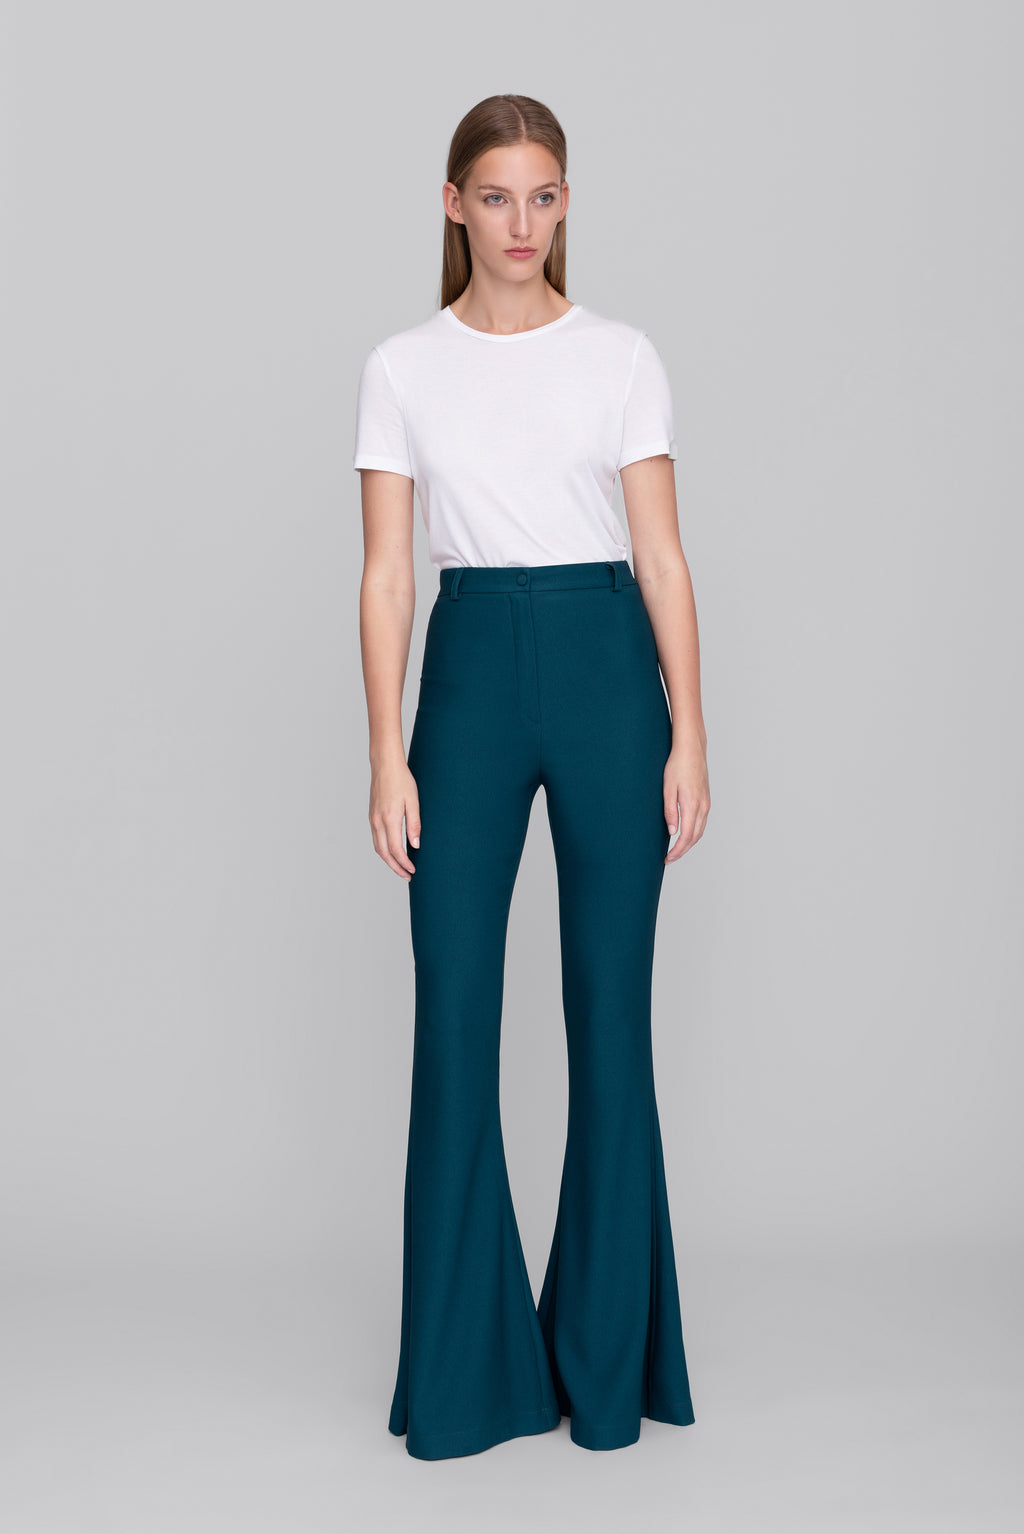 The Petrol Bianca Pants